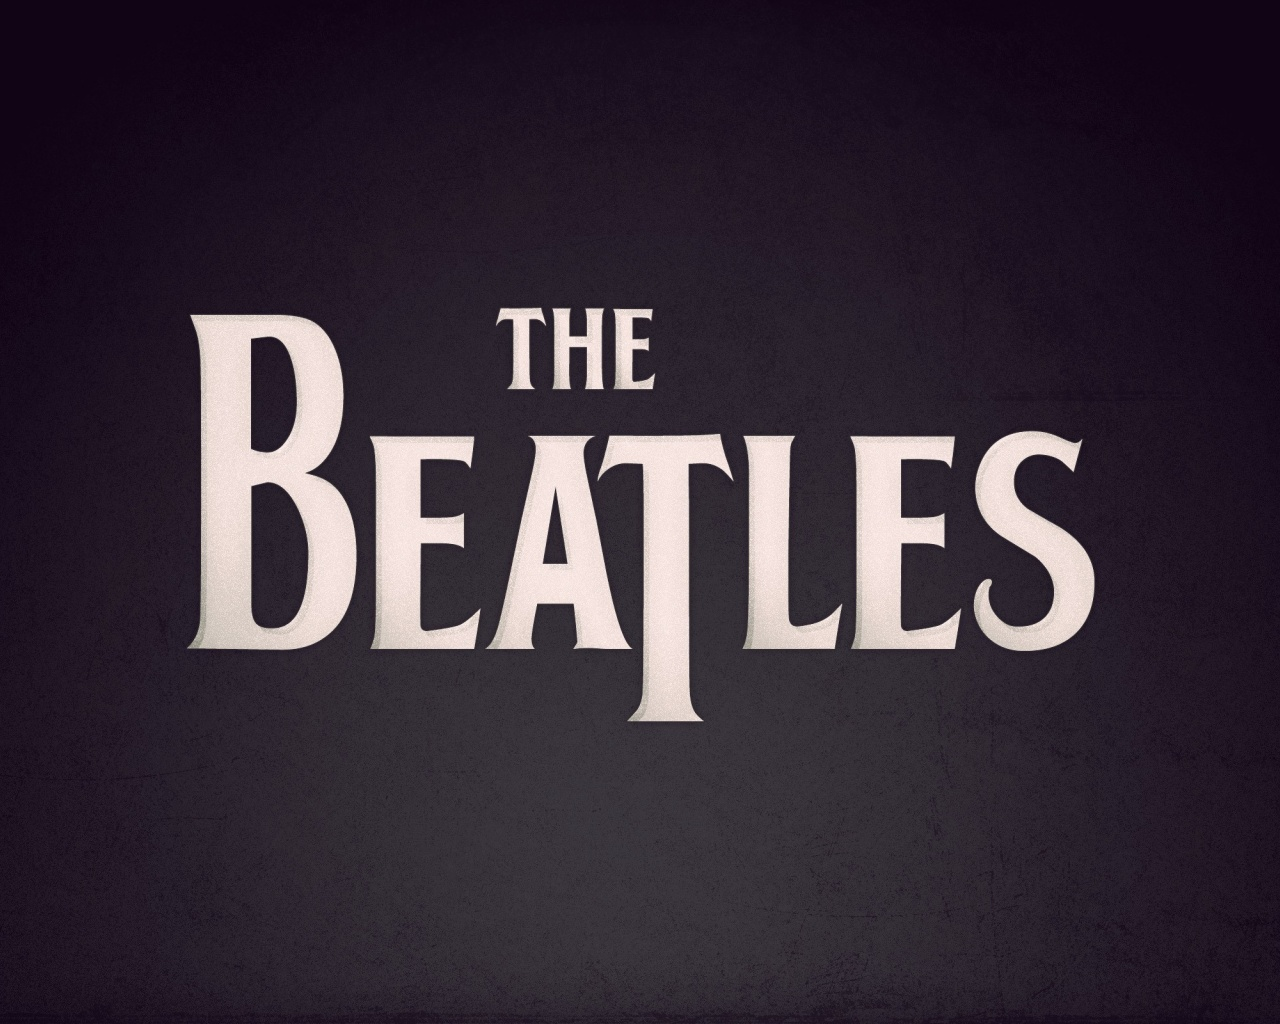 1280x1024 The Beatles Desktop PC And Mac Wallpaper